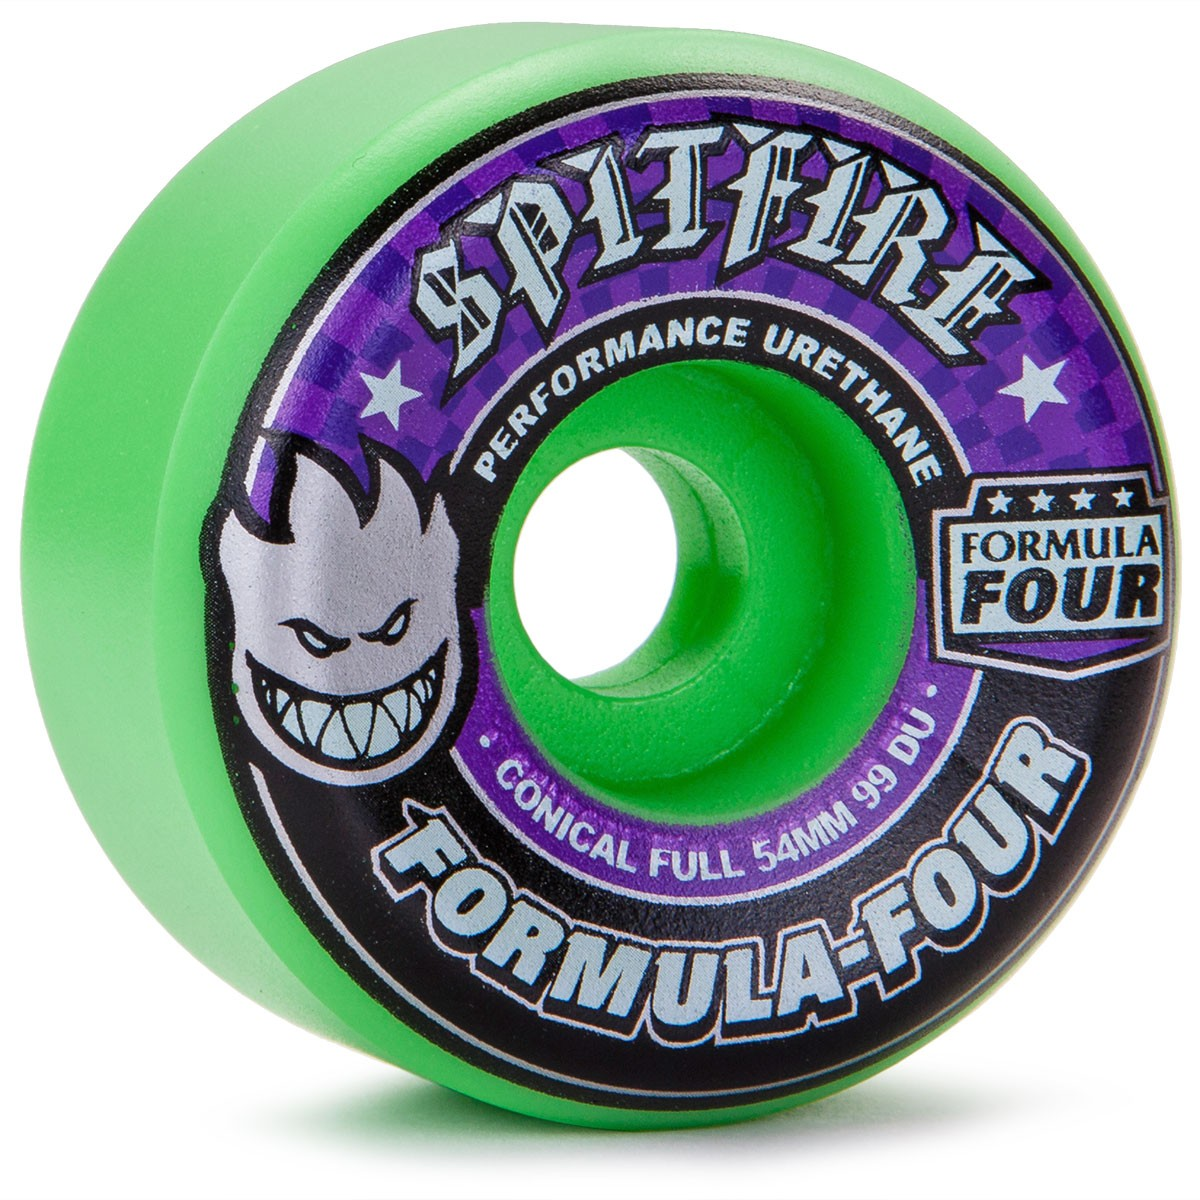 spitfire 54mm. spitfire formula four skateboard wheels - 54mm hot green 99a f